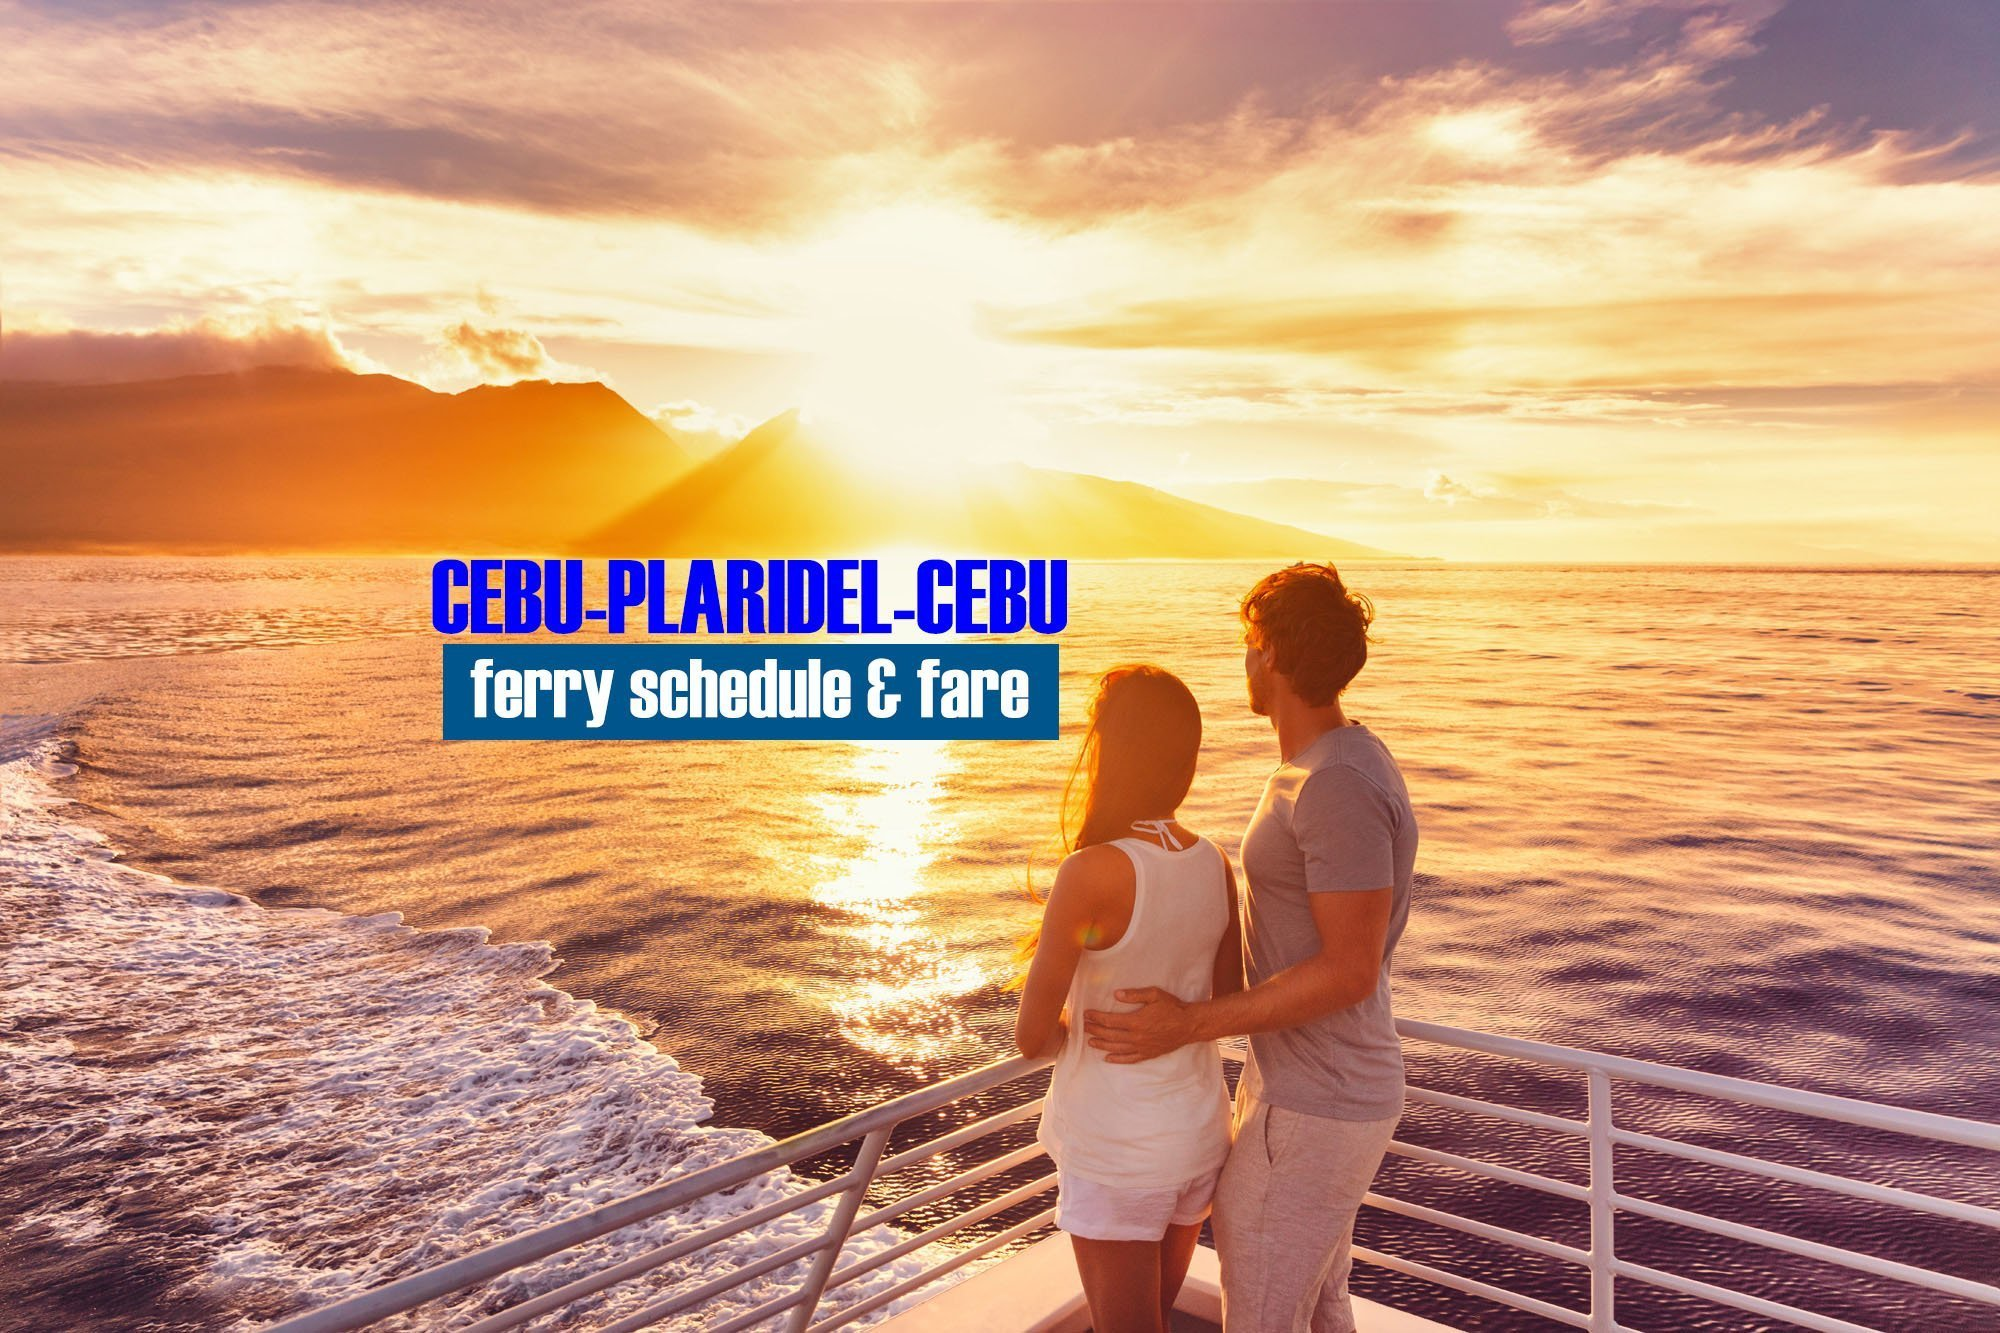 Cebu to Plaridel: 2020 Ferry Schedule and Fare Rates